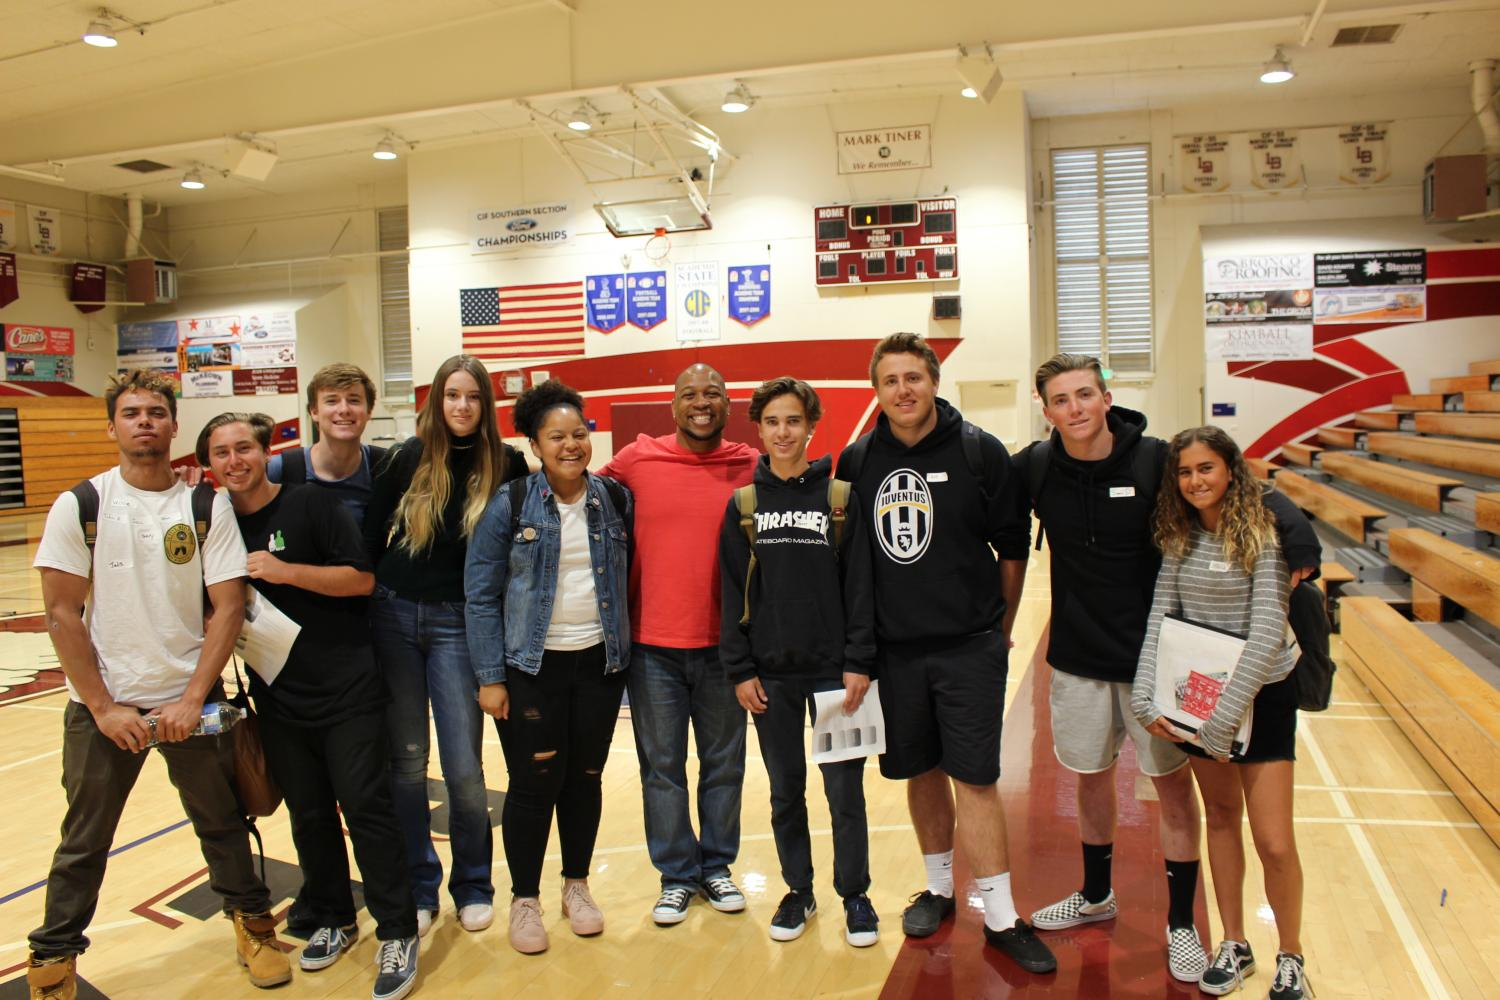 (Left to Right) Henry Syvertsen, Ethan Kavandi, Willie Shea, Kendall Fraser, Avalon Brice, Keith Hawkins, Garret Robben, Gustav Morck, Sean Decker, and Jessica Berk unite enthusiastically after the leadership assembly. This marked the second visit of Keith Hawkins to our campus this school year.